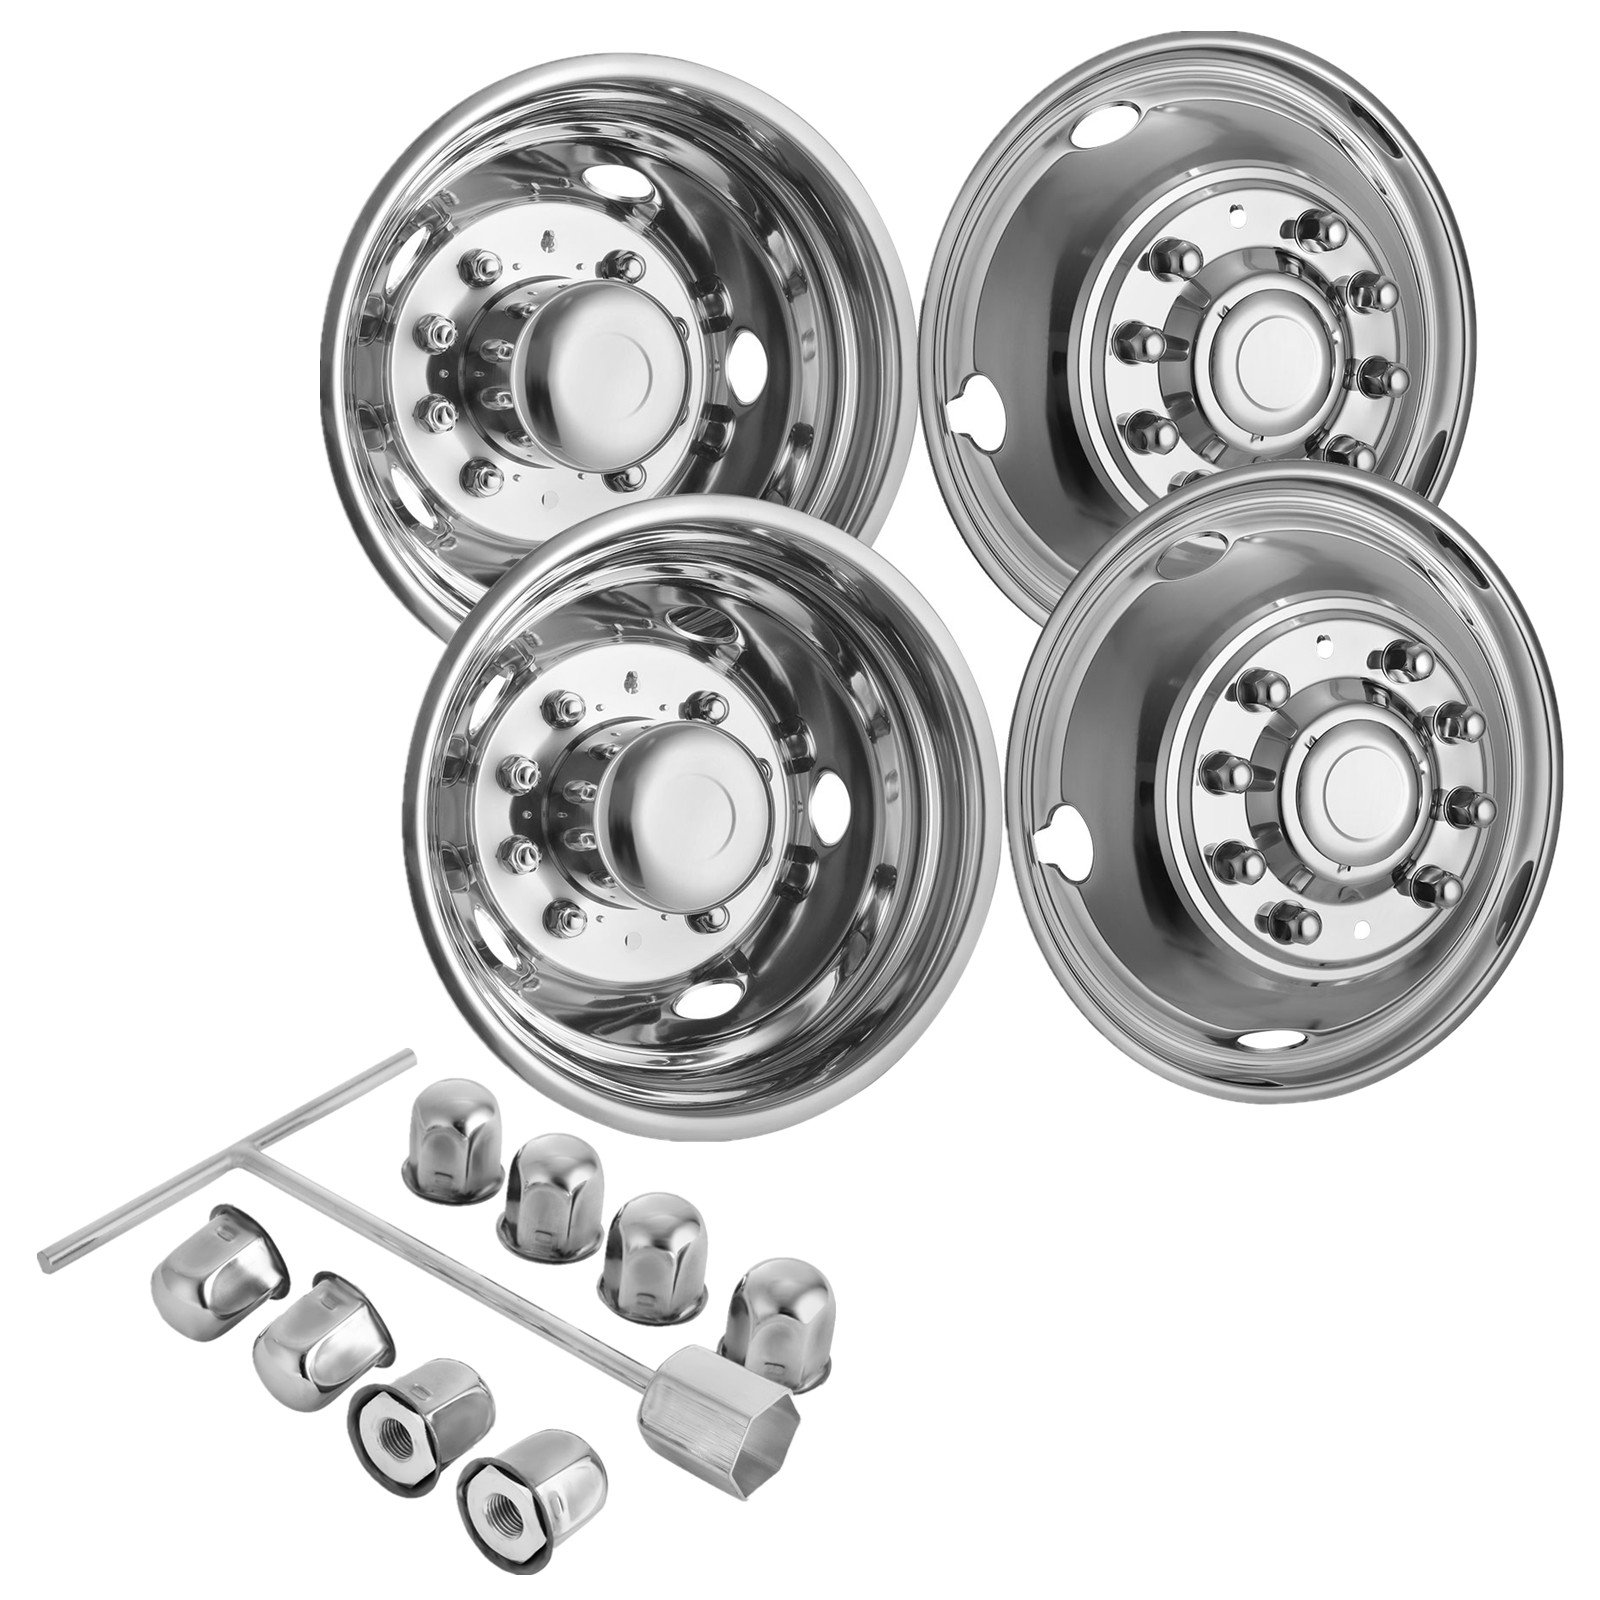 Mophorn 4 PCS of Wheel Simulators 19.5 Inch 10 Lug Hubcap Kit Fit for 2005-2017 Ford F450 - F550 2WD Trunk Polished Stainless Steel Bolt On Dually Wheel Cover Set (19.5'') by Mophorn